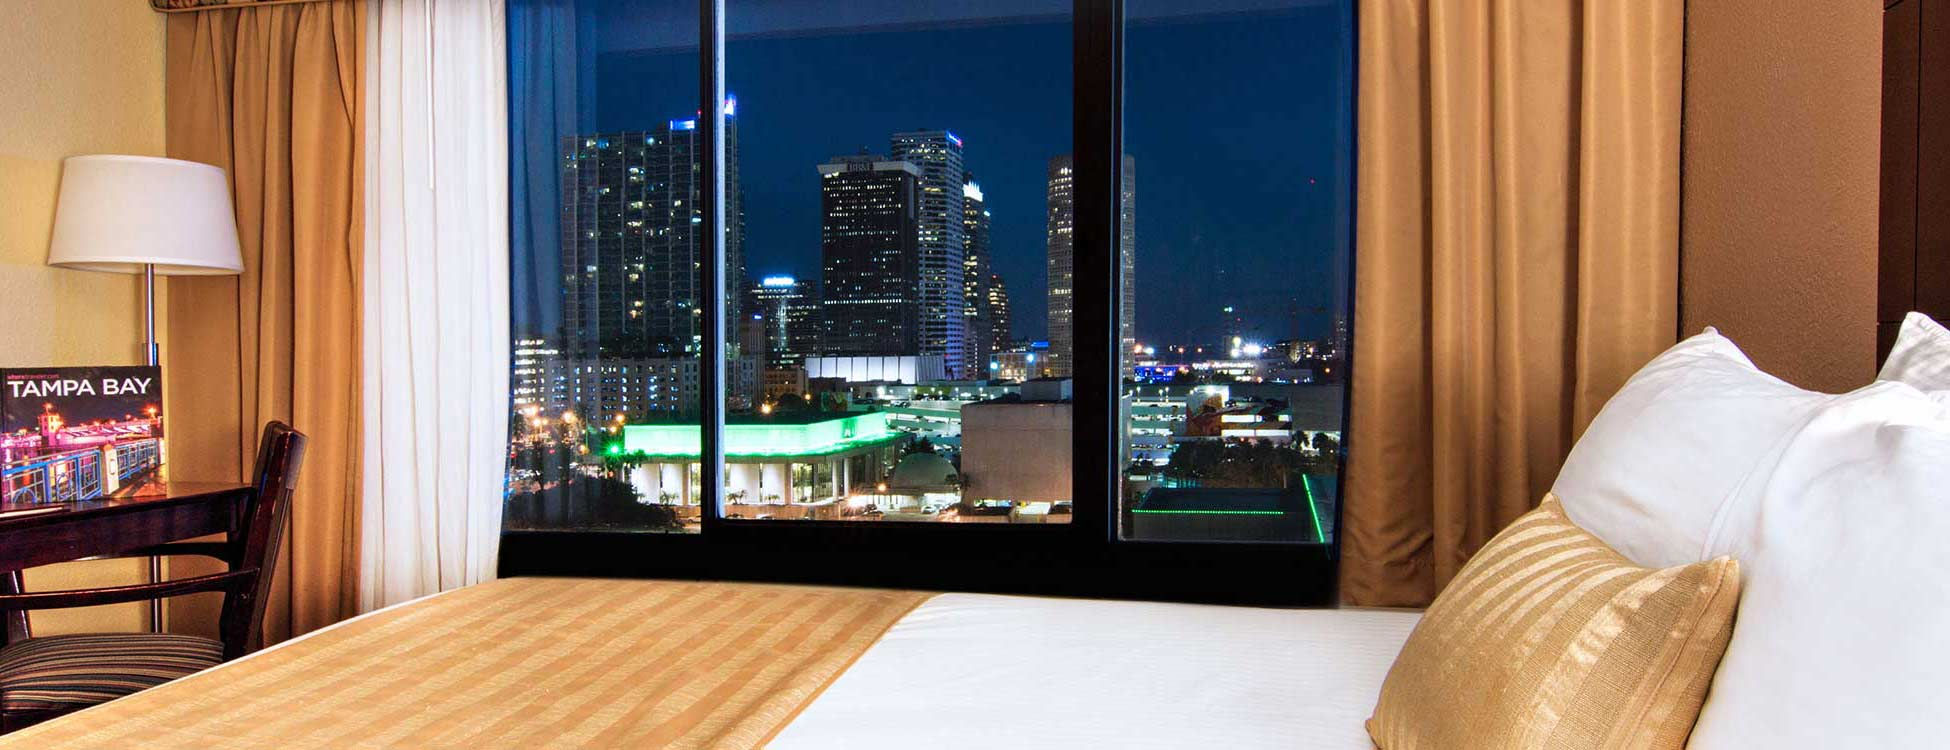 view of city skyline at night from guest room